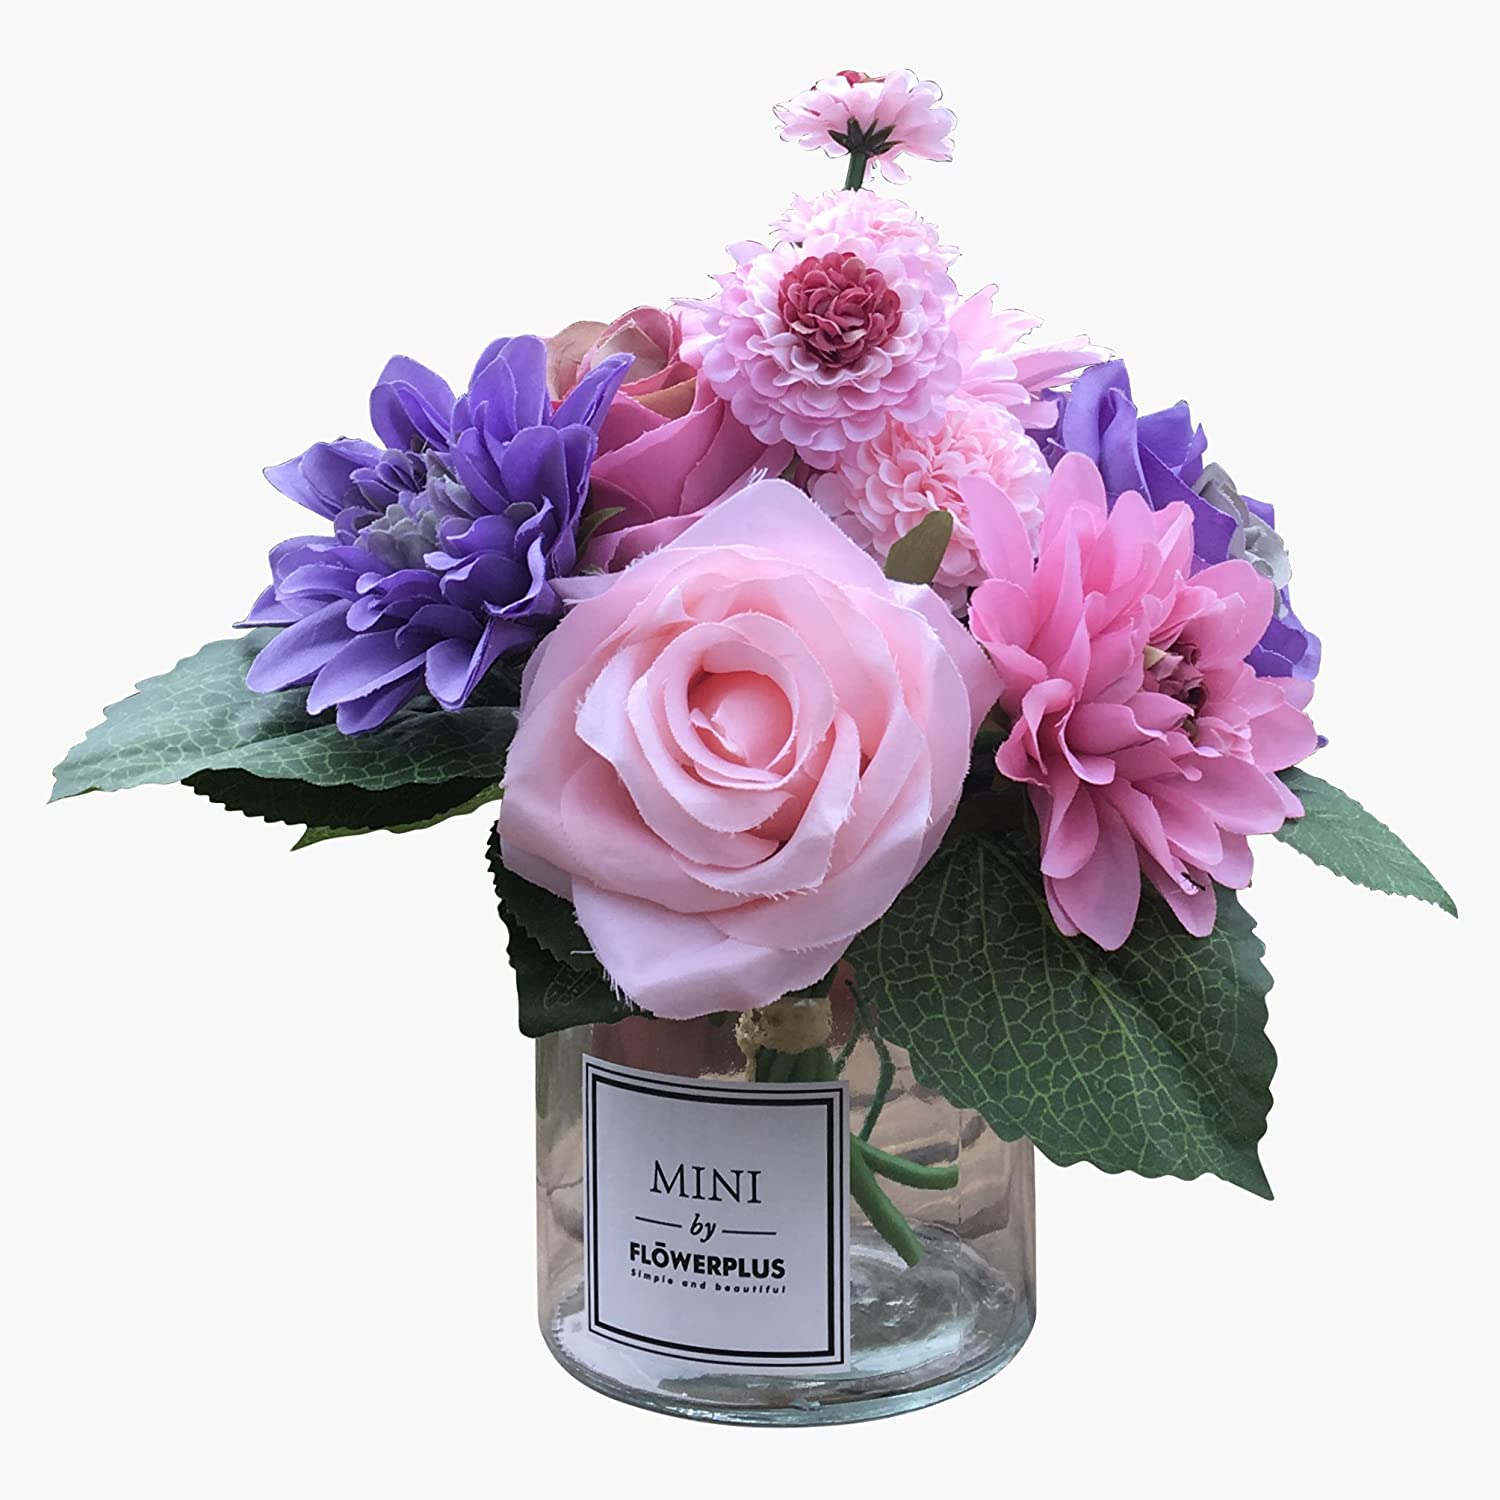 Fresh home Silk Flowers in vase Flower Arrangements Artificial Flowers with Vase Rose Dahlia Chrysanthemum with Glass VaseFake Flower for Home Decor & Amazon.com: Fresh home Silk Flowers in vase Flower Arrangements ...